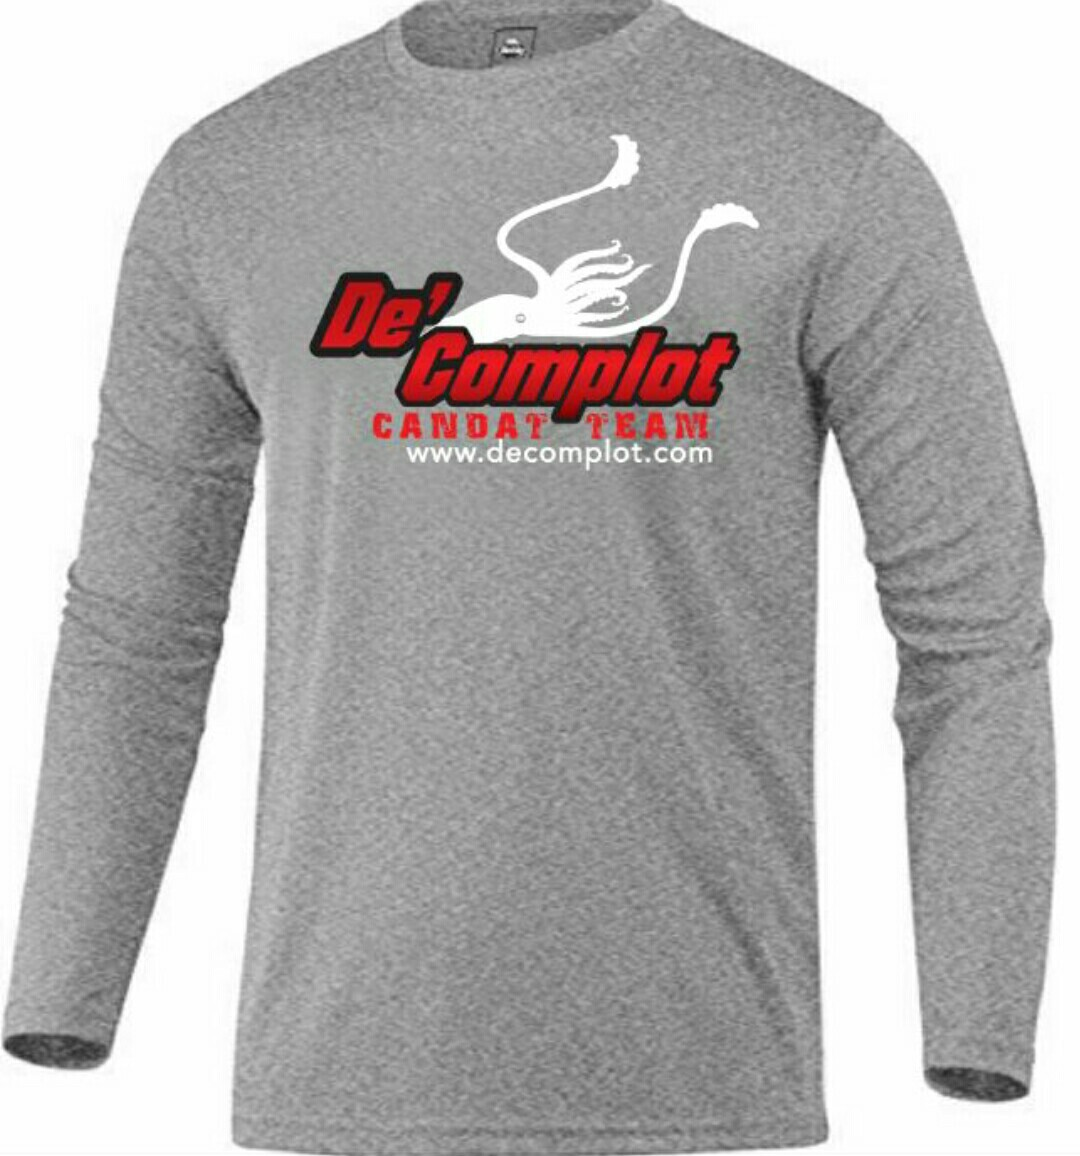 DeComplot Candat Team TSHIRT